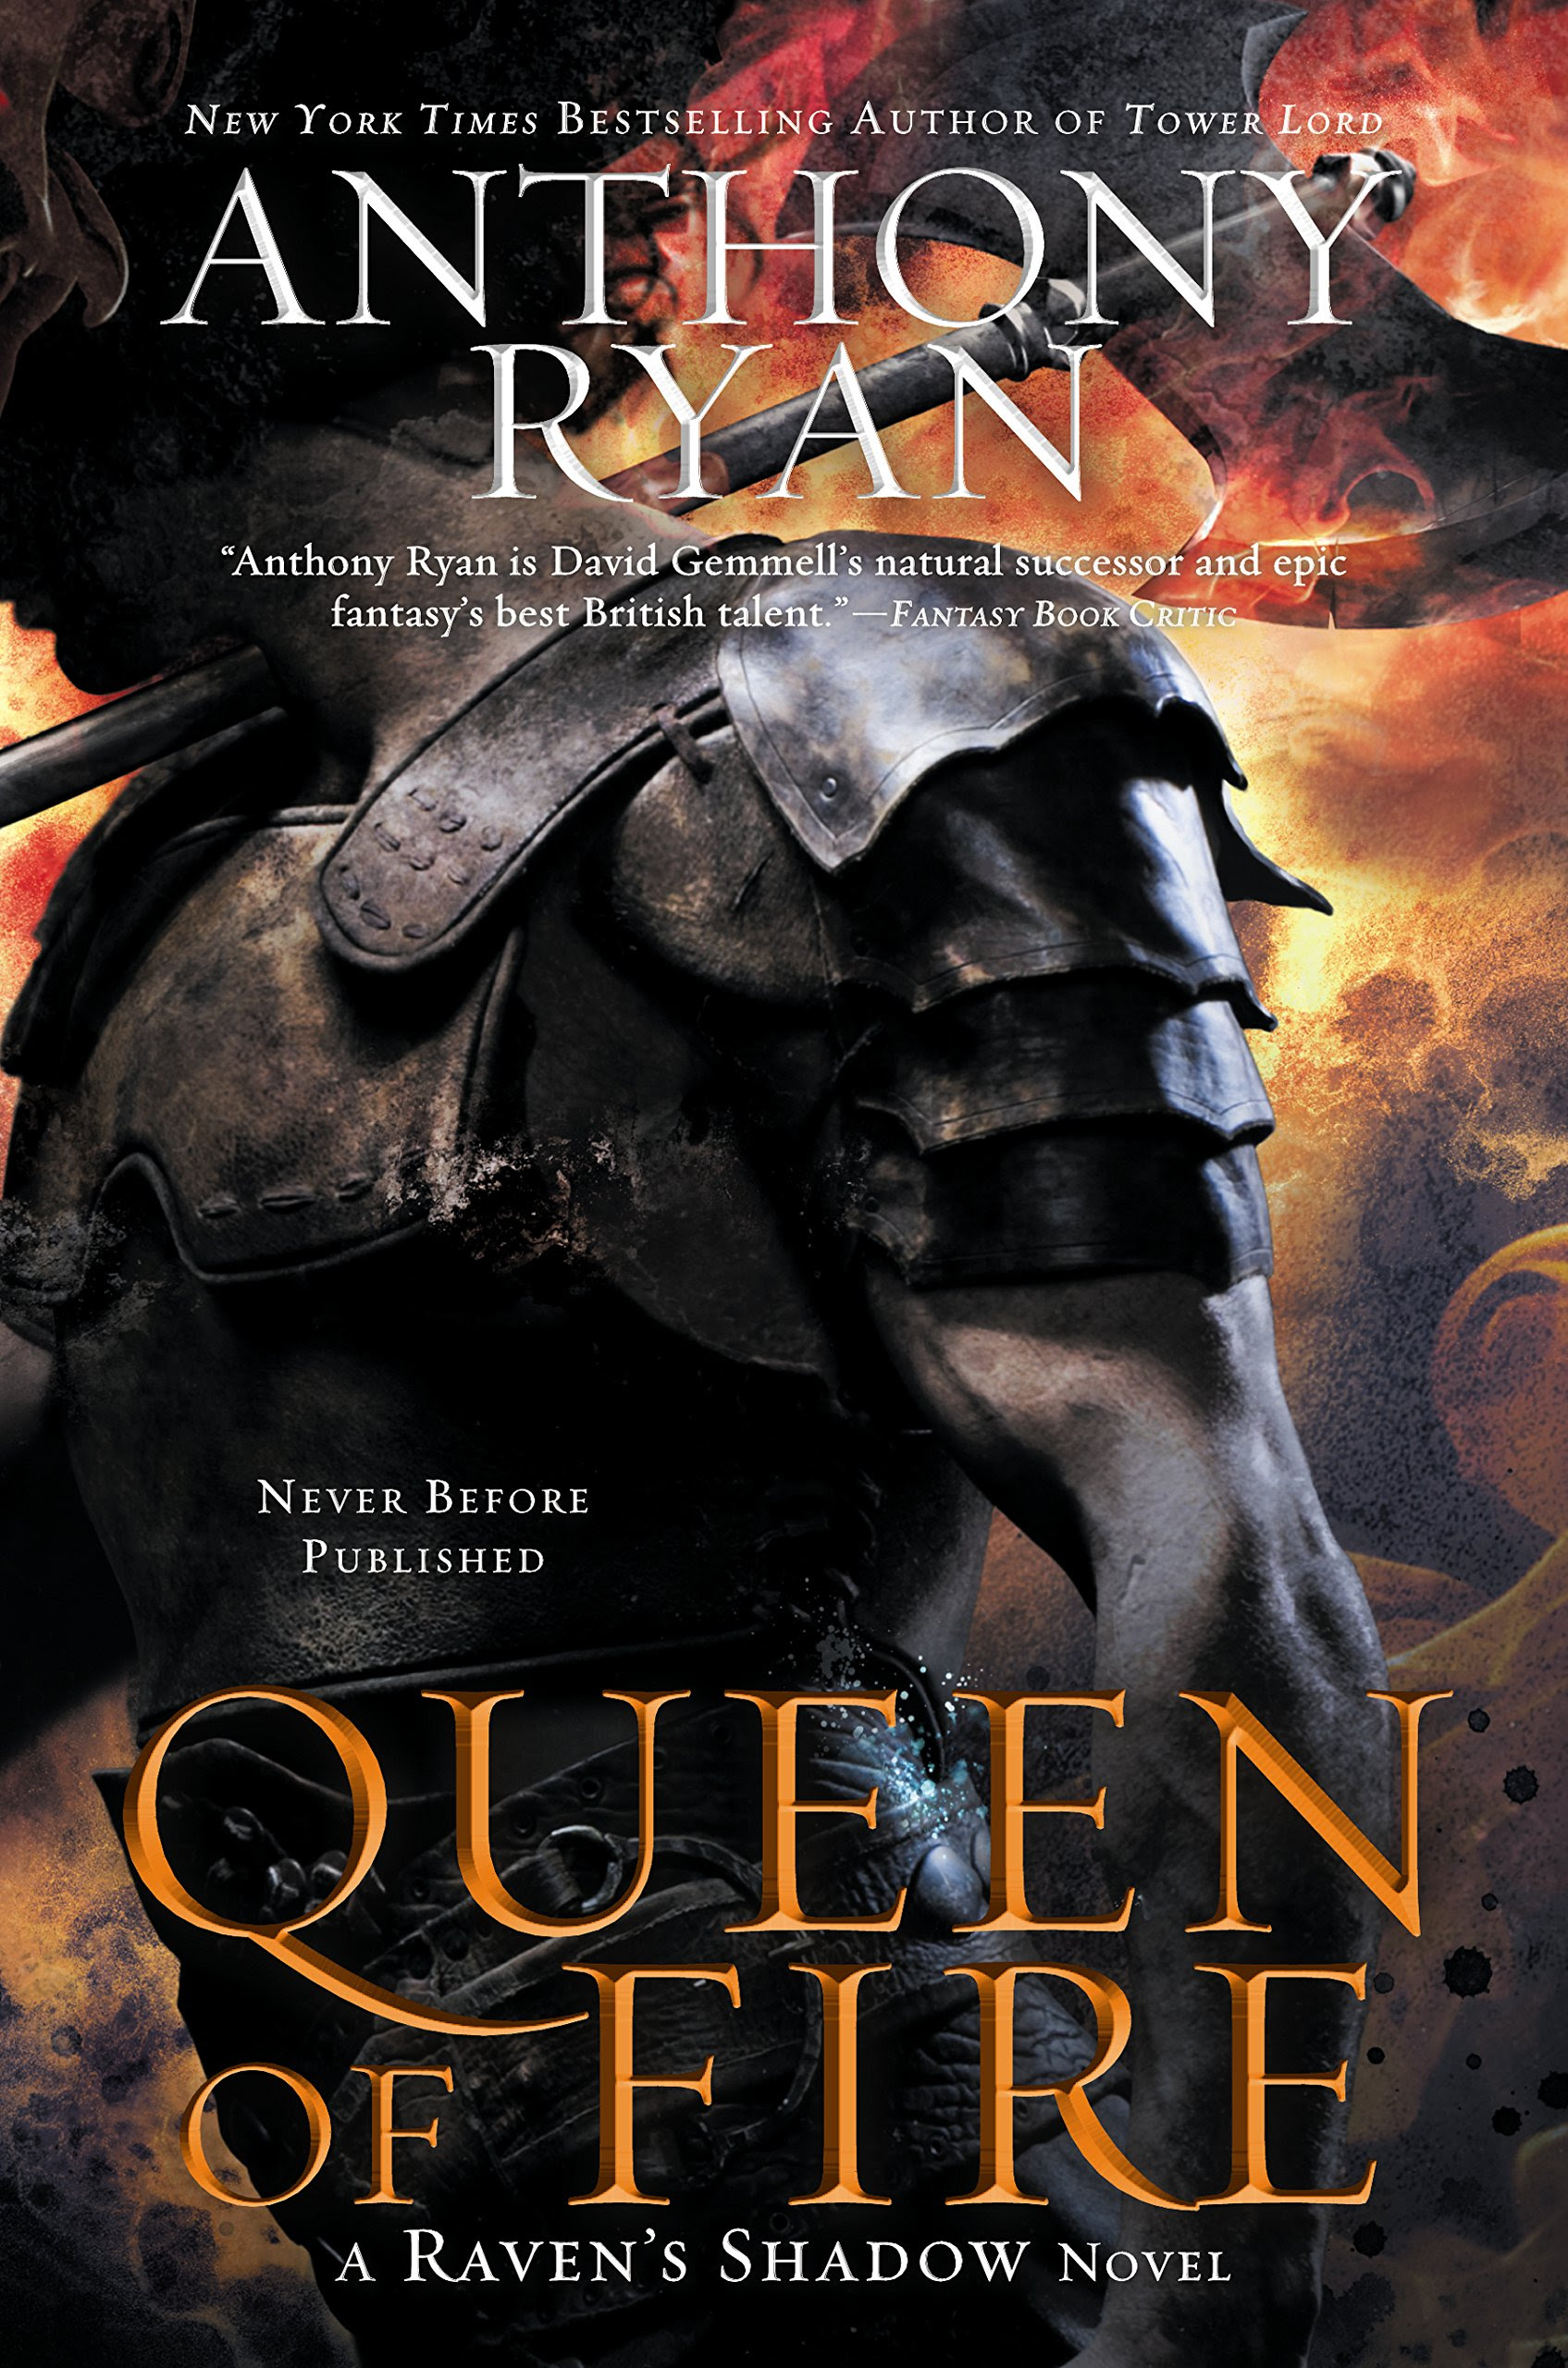 http://vignette2.wikia.nocookie.net/beralshakur/images/a/ad/Queen_of_Fire_(US_Cover).jpg/revision/latest?cb=20150212033645